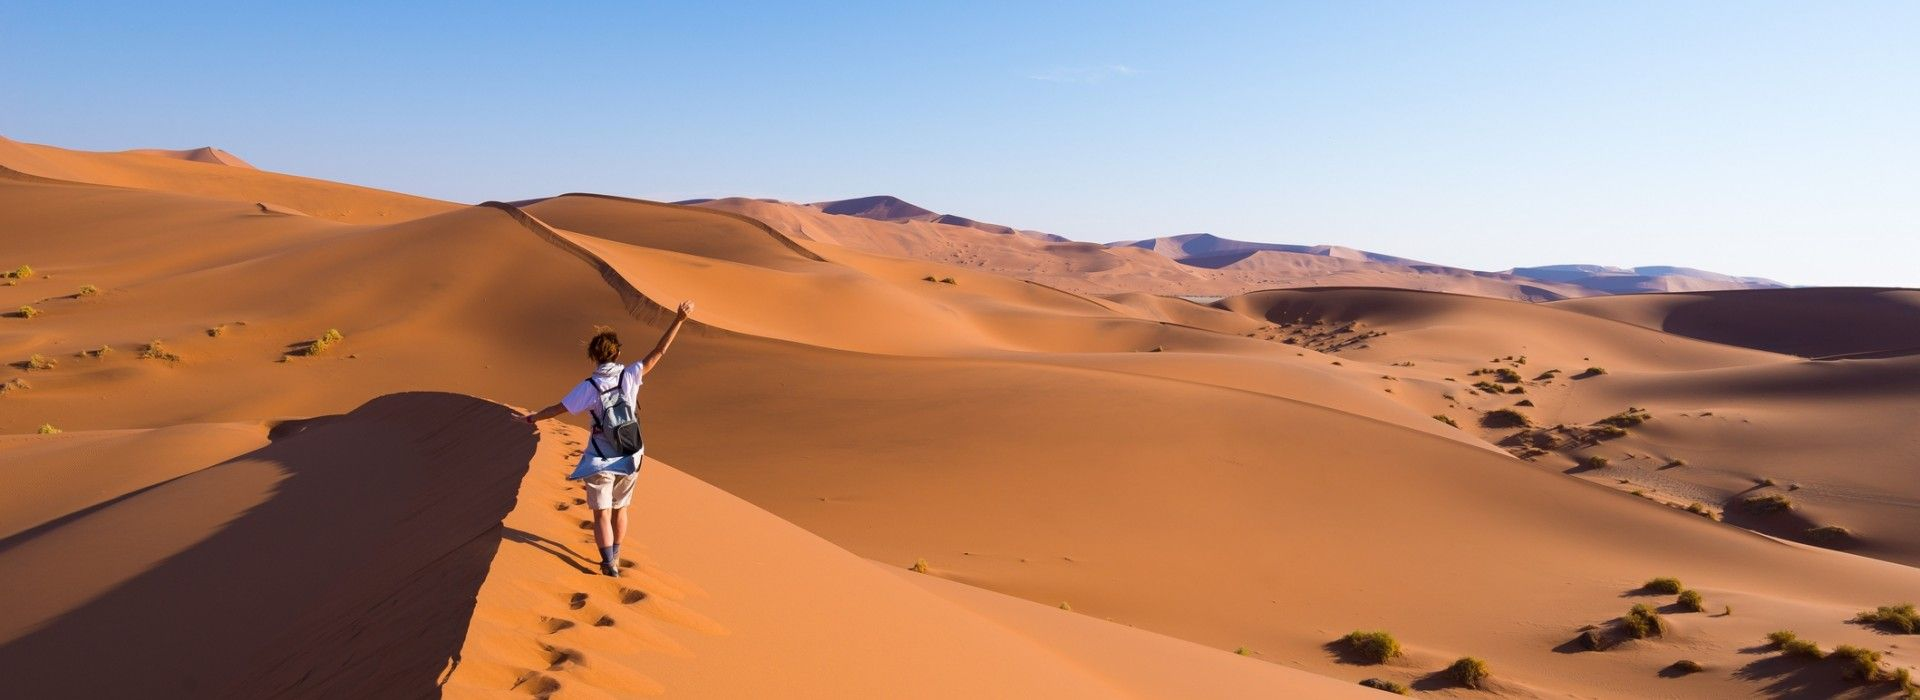 Getaways and short breaks Tours in Namibia